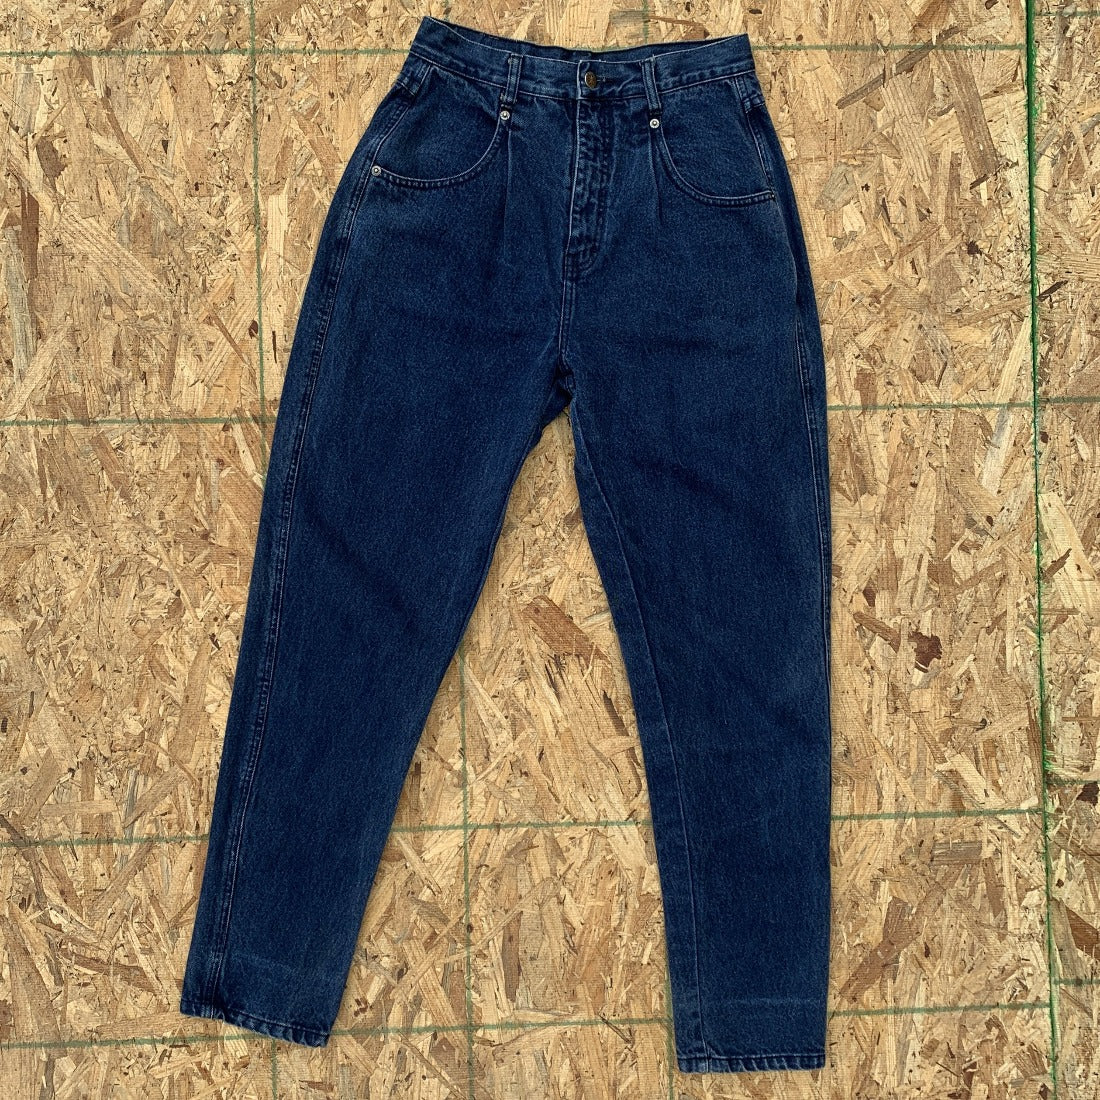 80s Brittania Pleated Denim Jeans Pants| 28